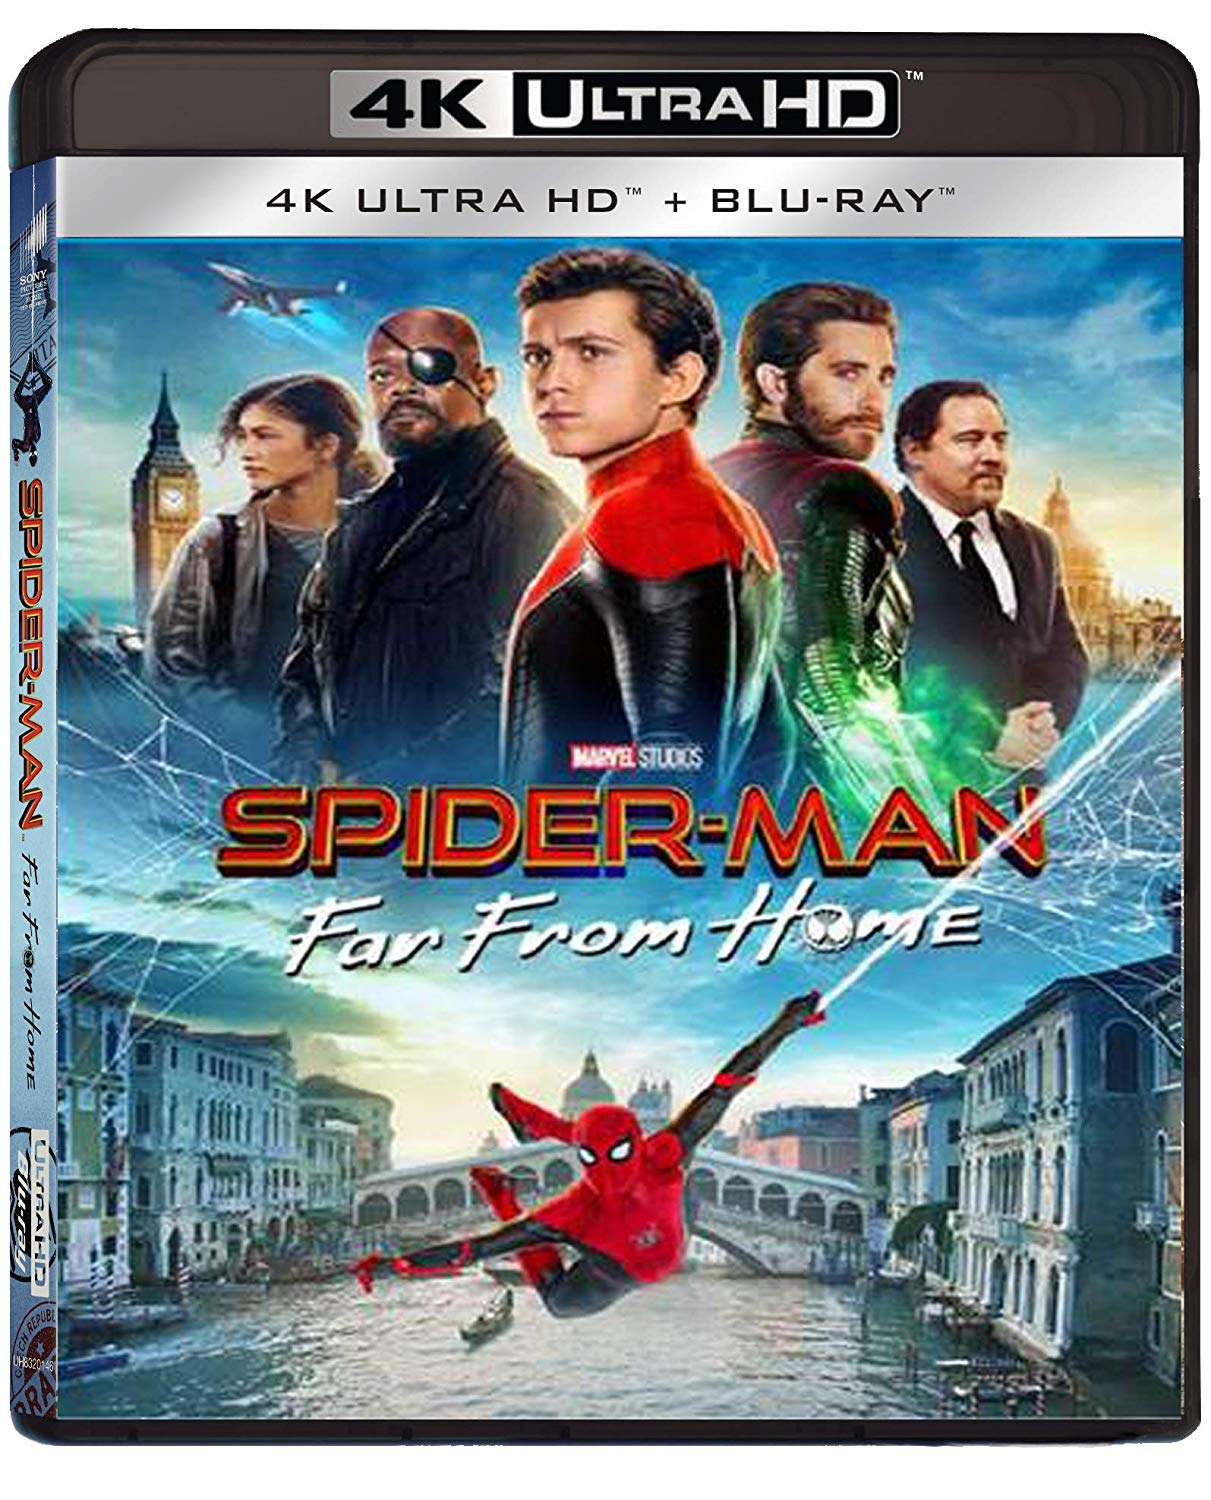 SPIDER-MAN: FAR FROM HOME (4K UHD+BLU-RAY)